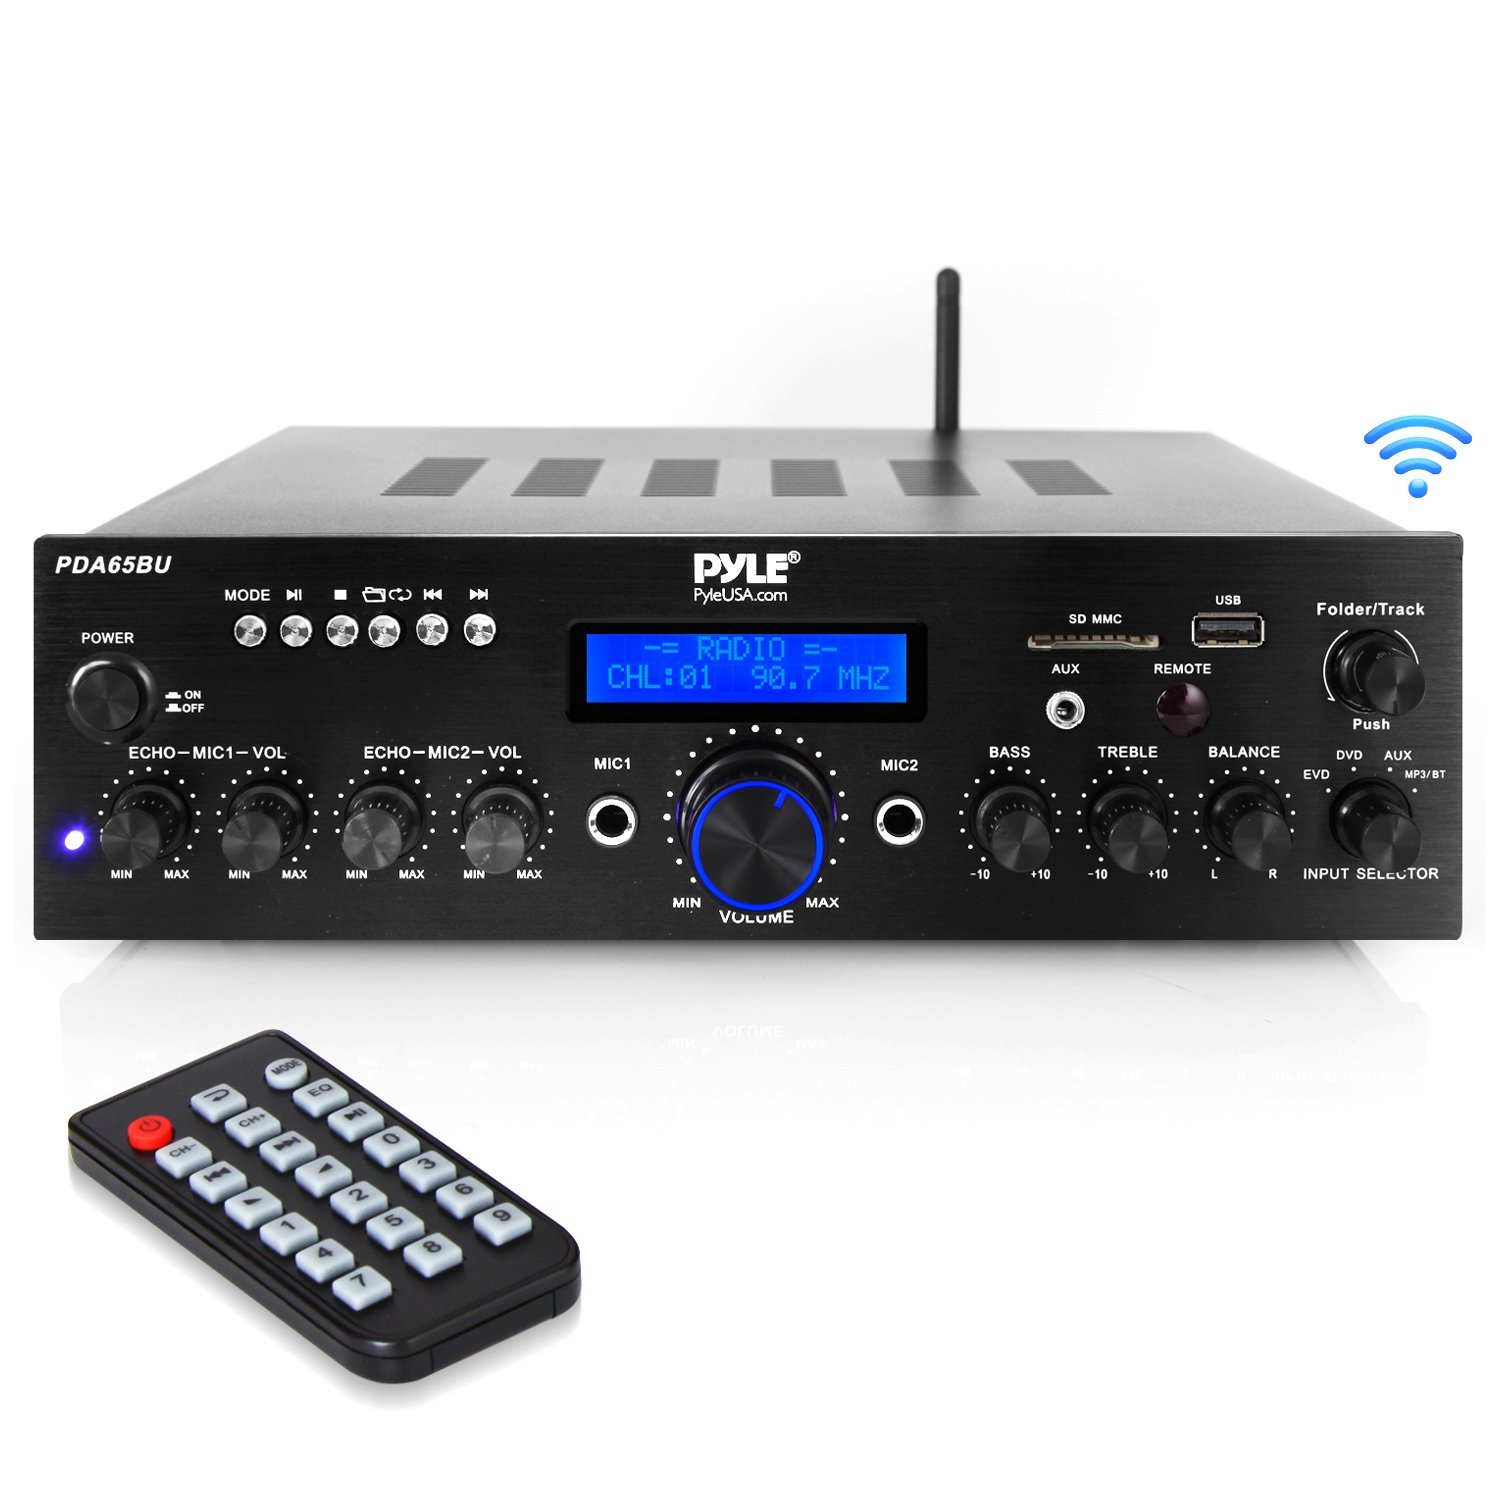 Wireless Bluetooth Power Amplifier System - 200W Dual Channel Sound Audio Stereo Receiver w/ USB, AUX, MIC in w/ Echo, Radio Home Theater Entertainment via RCA, Studio Use - Pyle PDA65BU Sound Around